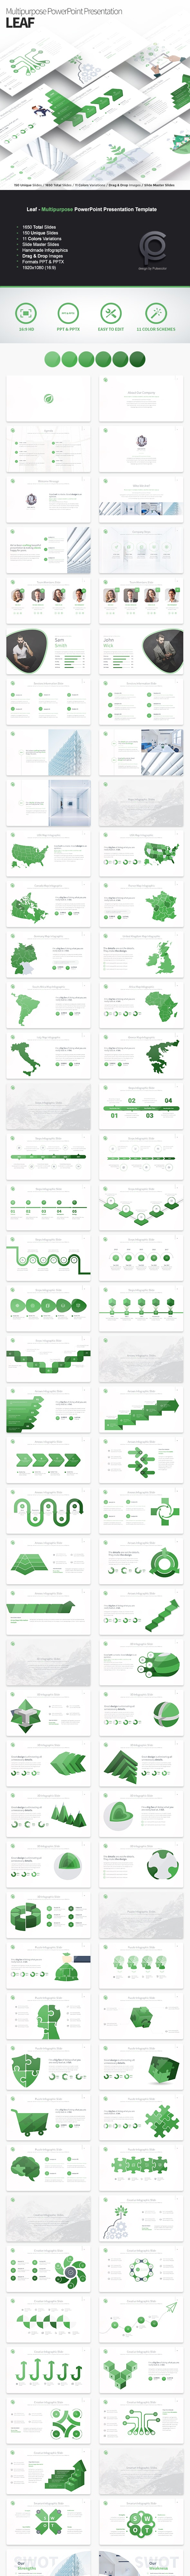 Leaf - Multipurpose PowerPoint Presentation Template - Business PowerPoint Templates